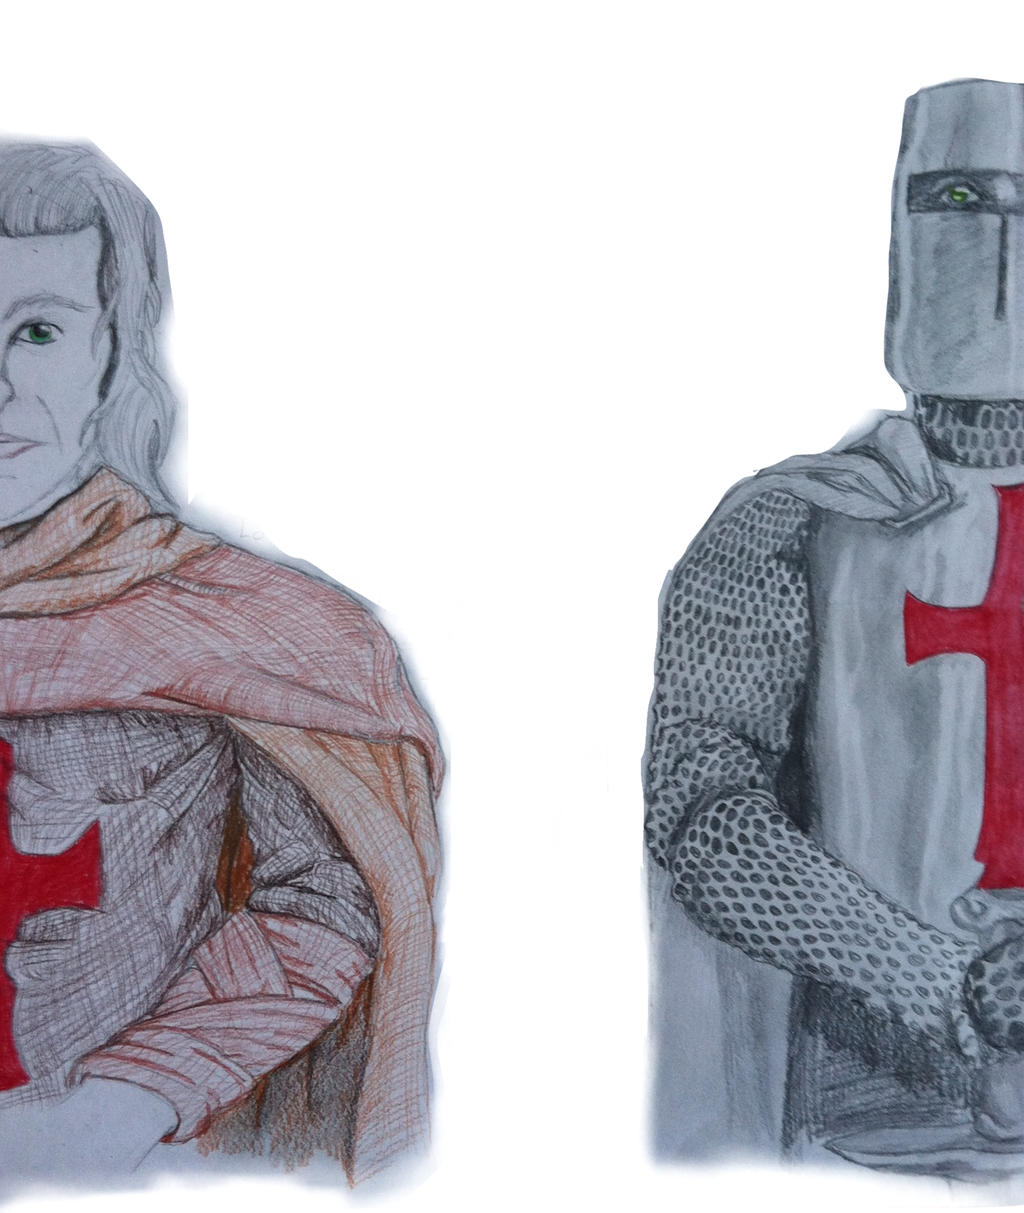 Men of the Crusades by dARk-knighT4